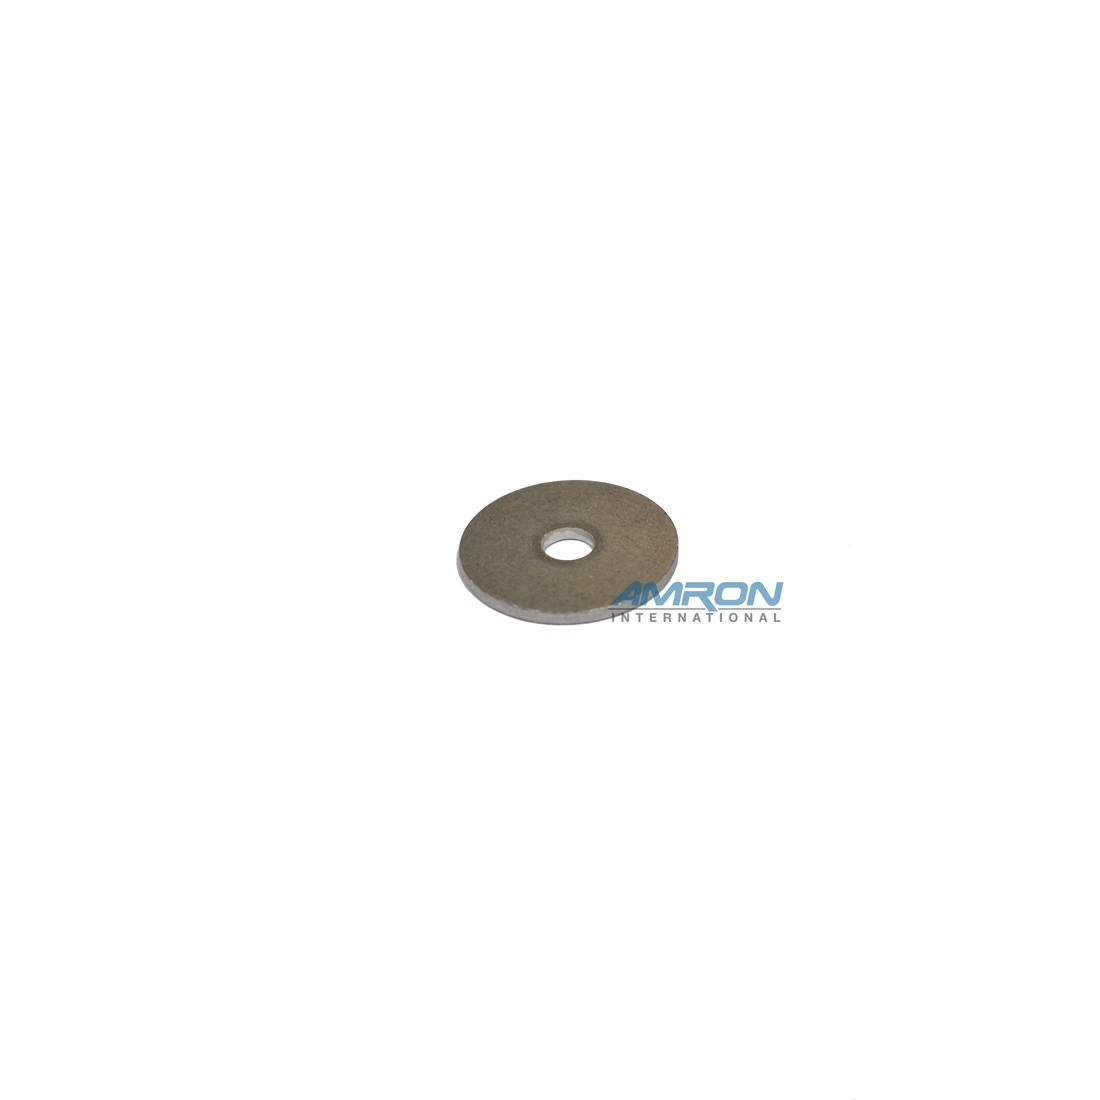 Kirby Morgan 530-540 Washer